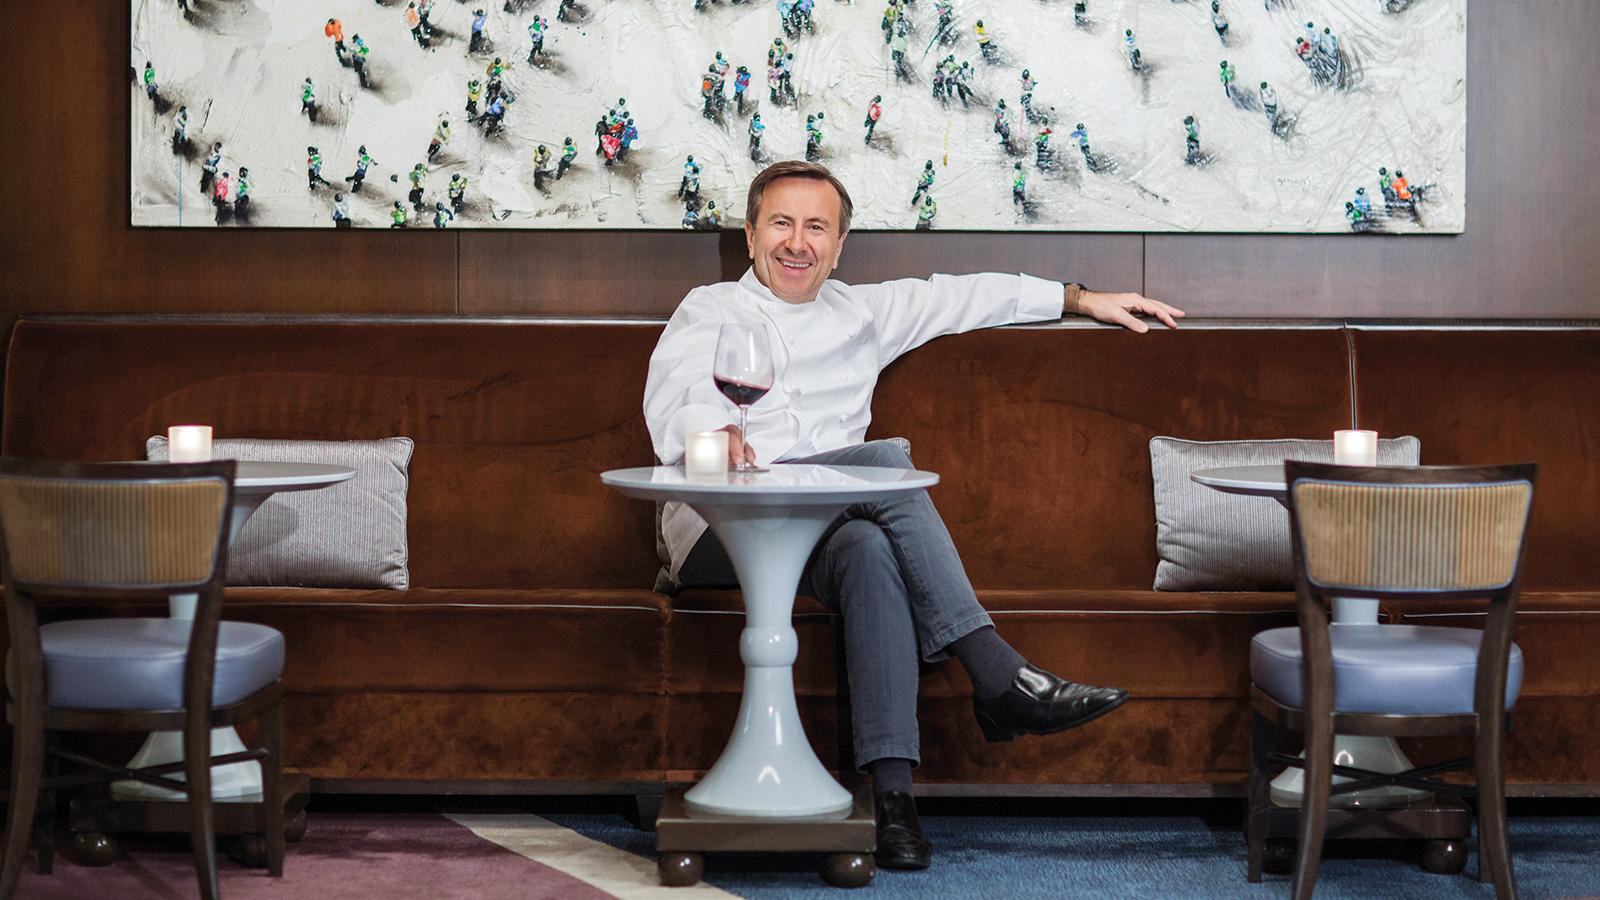 Chef Daniel Boulud at a table in his restaurant with a glass of wine